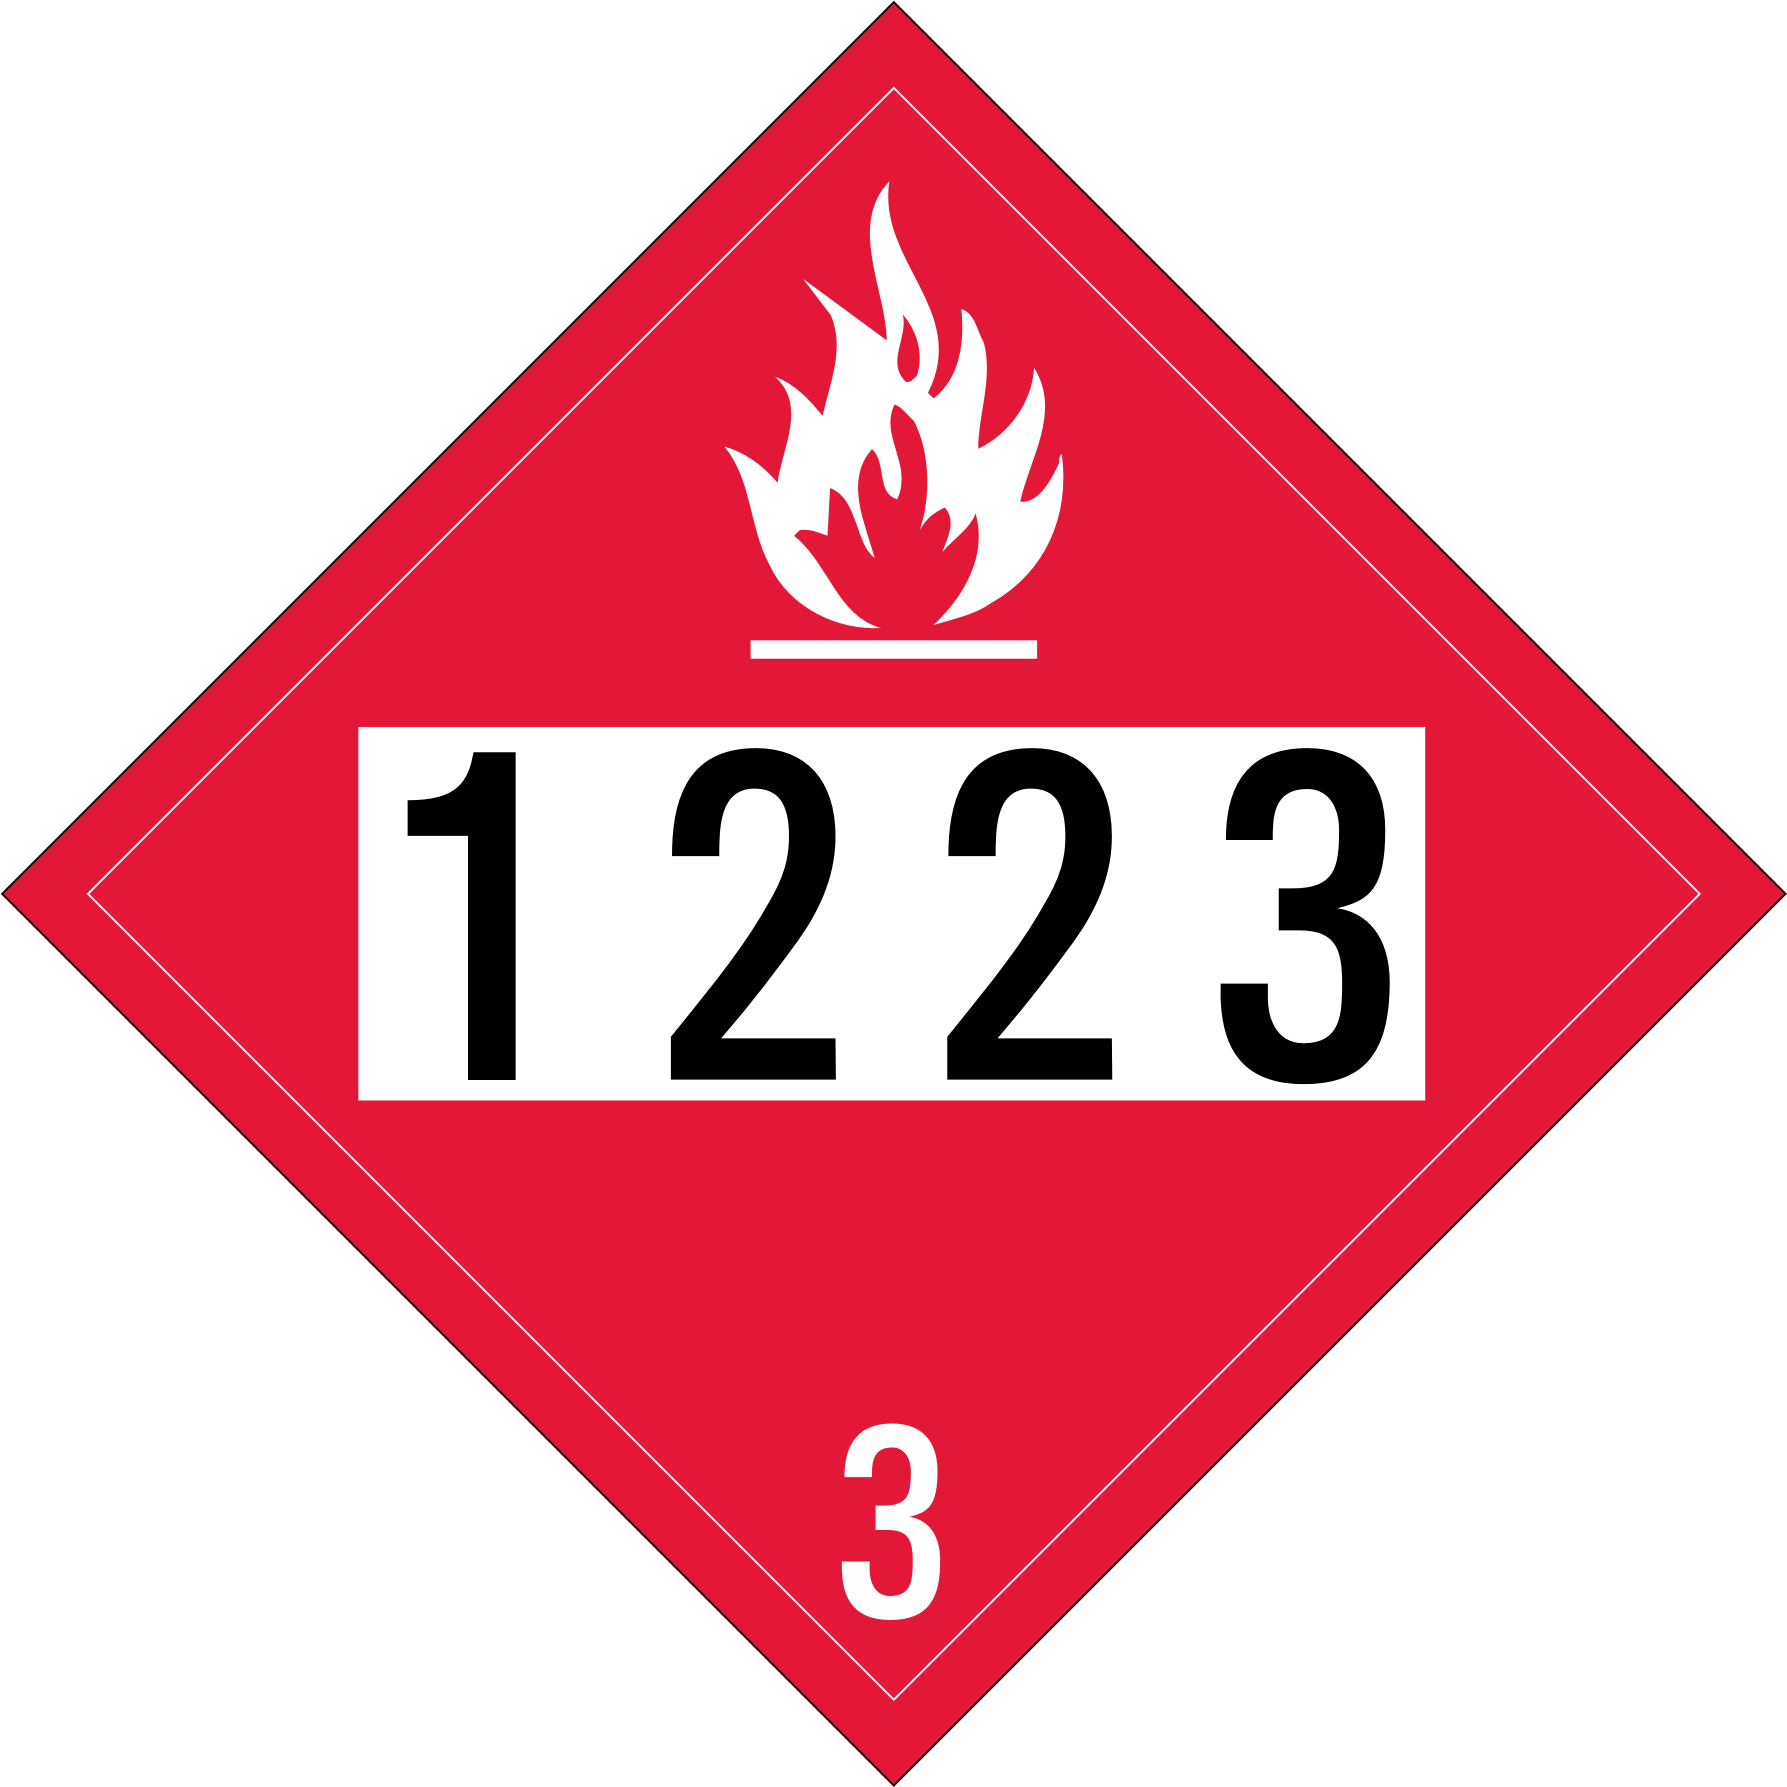 UN 1223 (Kerosene) Flammable Placard (Alpin Gothic CG3) by Fred the Oyster